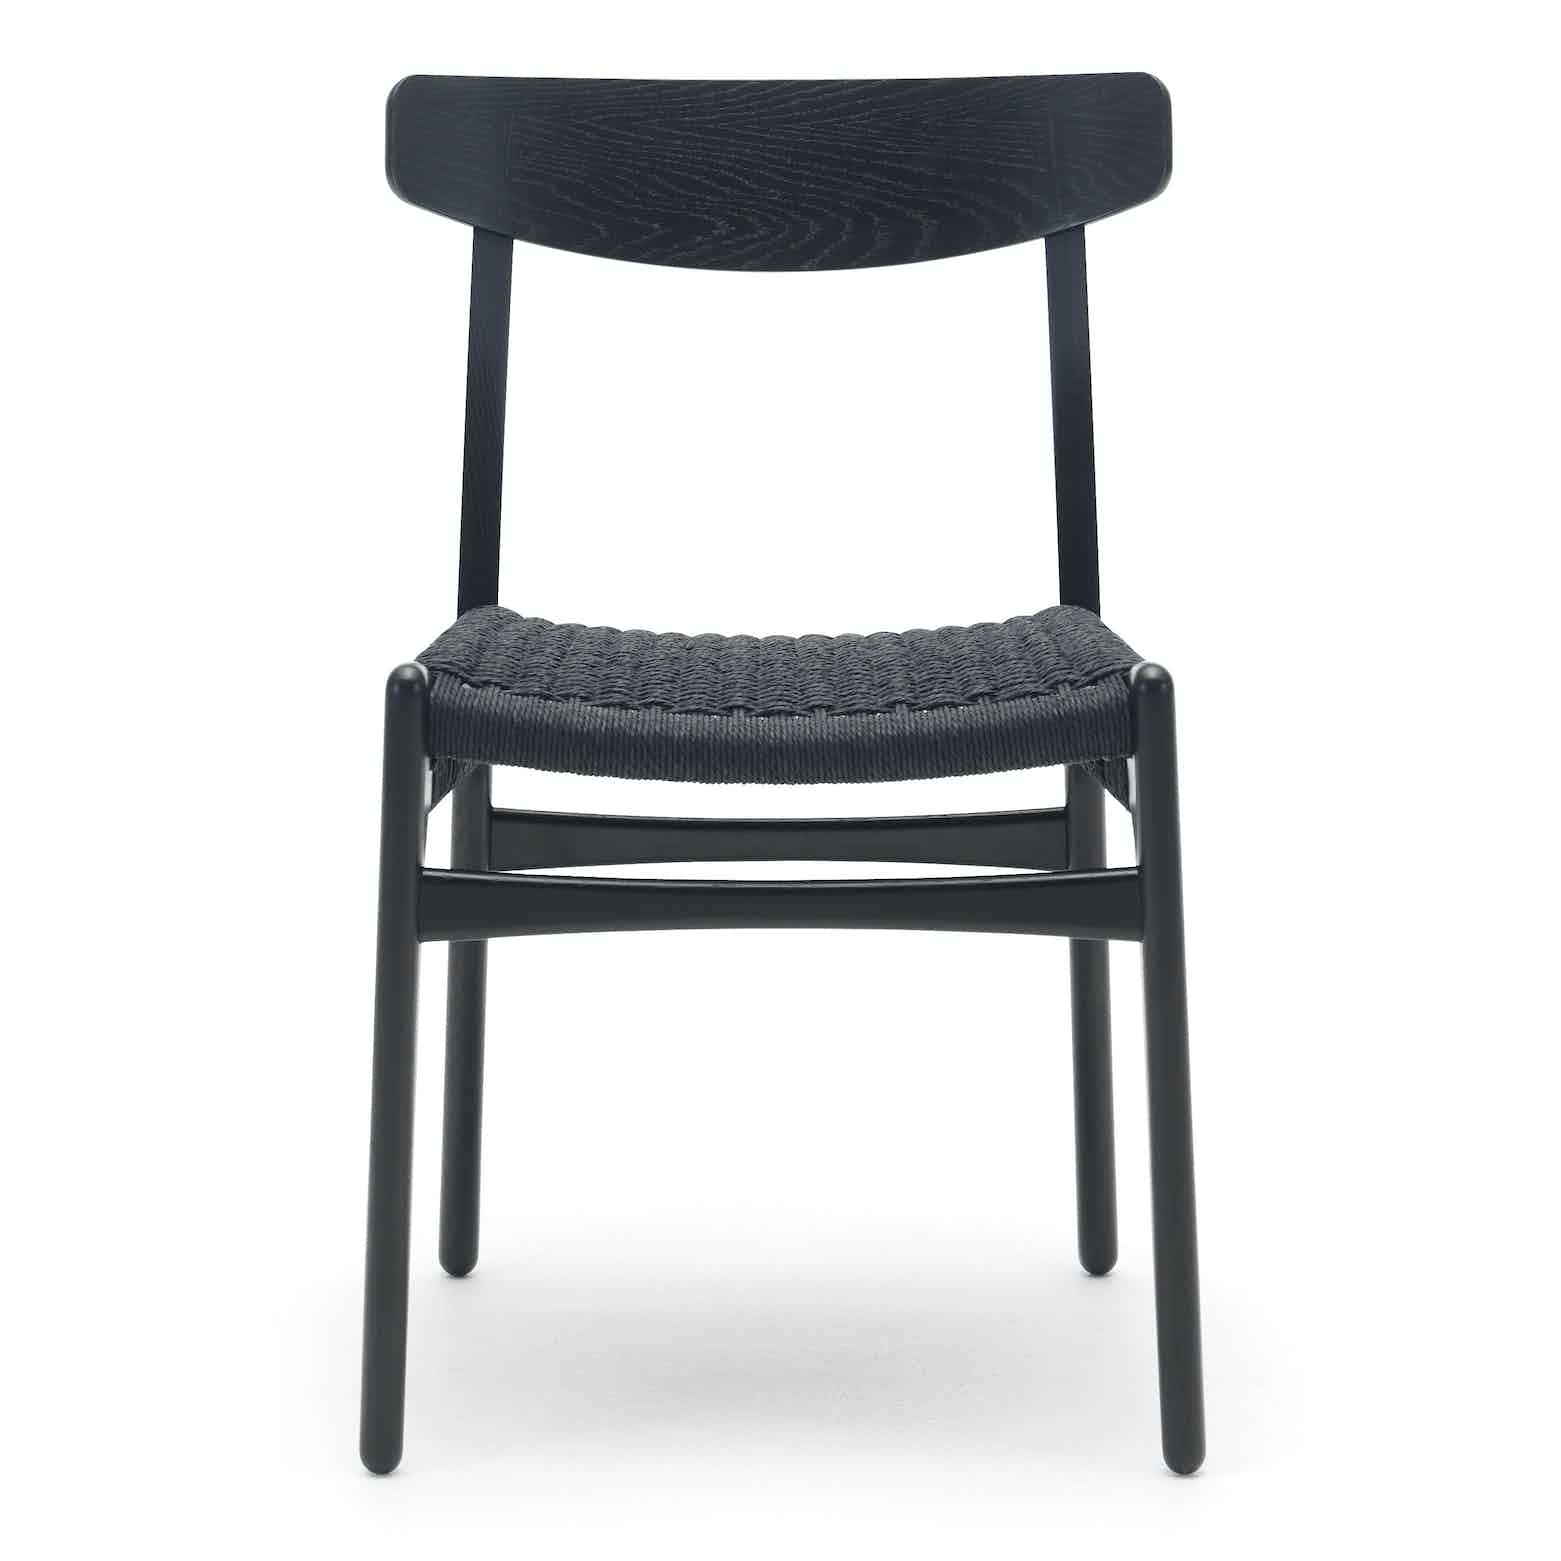 Carl-hansen-son-front-black-ch23-haute-living